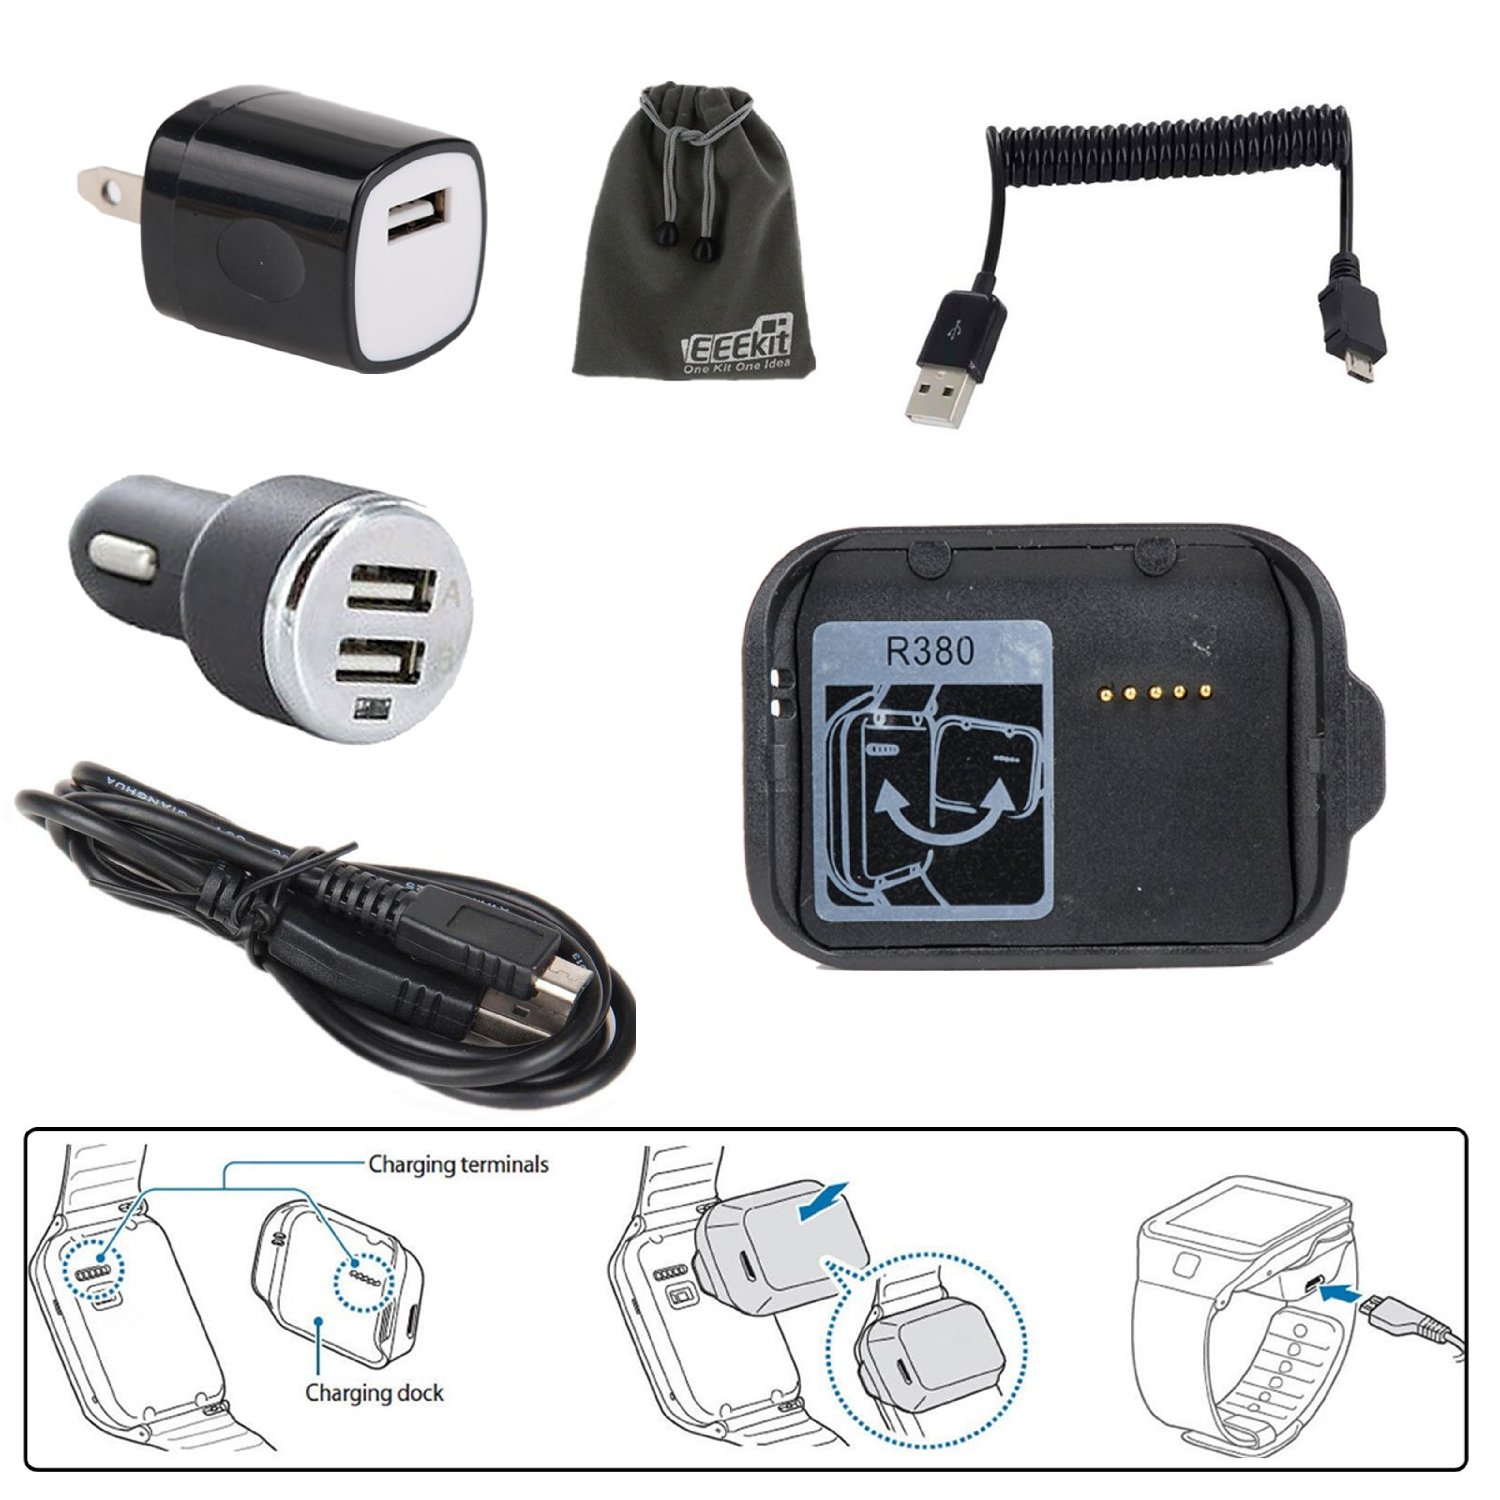 EEEKit 2in1 Charging Solution Kit for Samsung Gear 2 SM R380, Charging Cradle Charger Dock , AC Wall Charger, USB Car Charger, Charging Cable